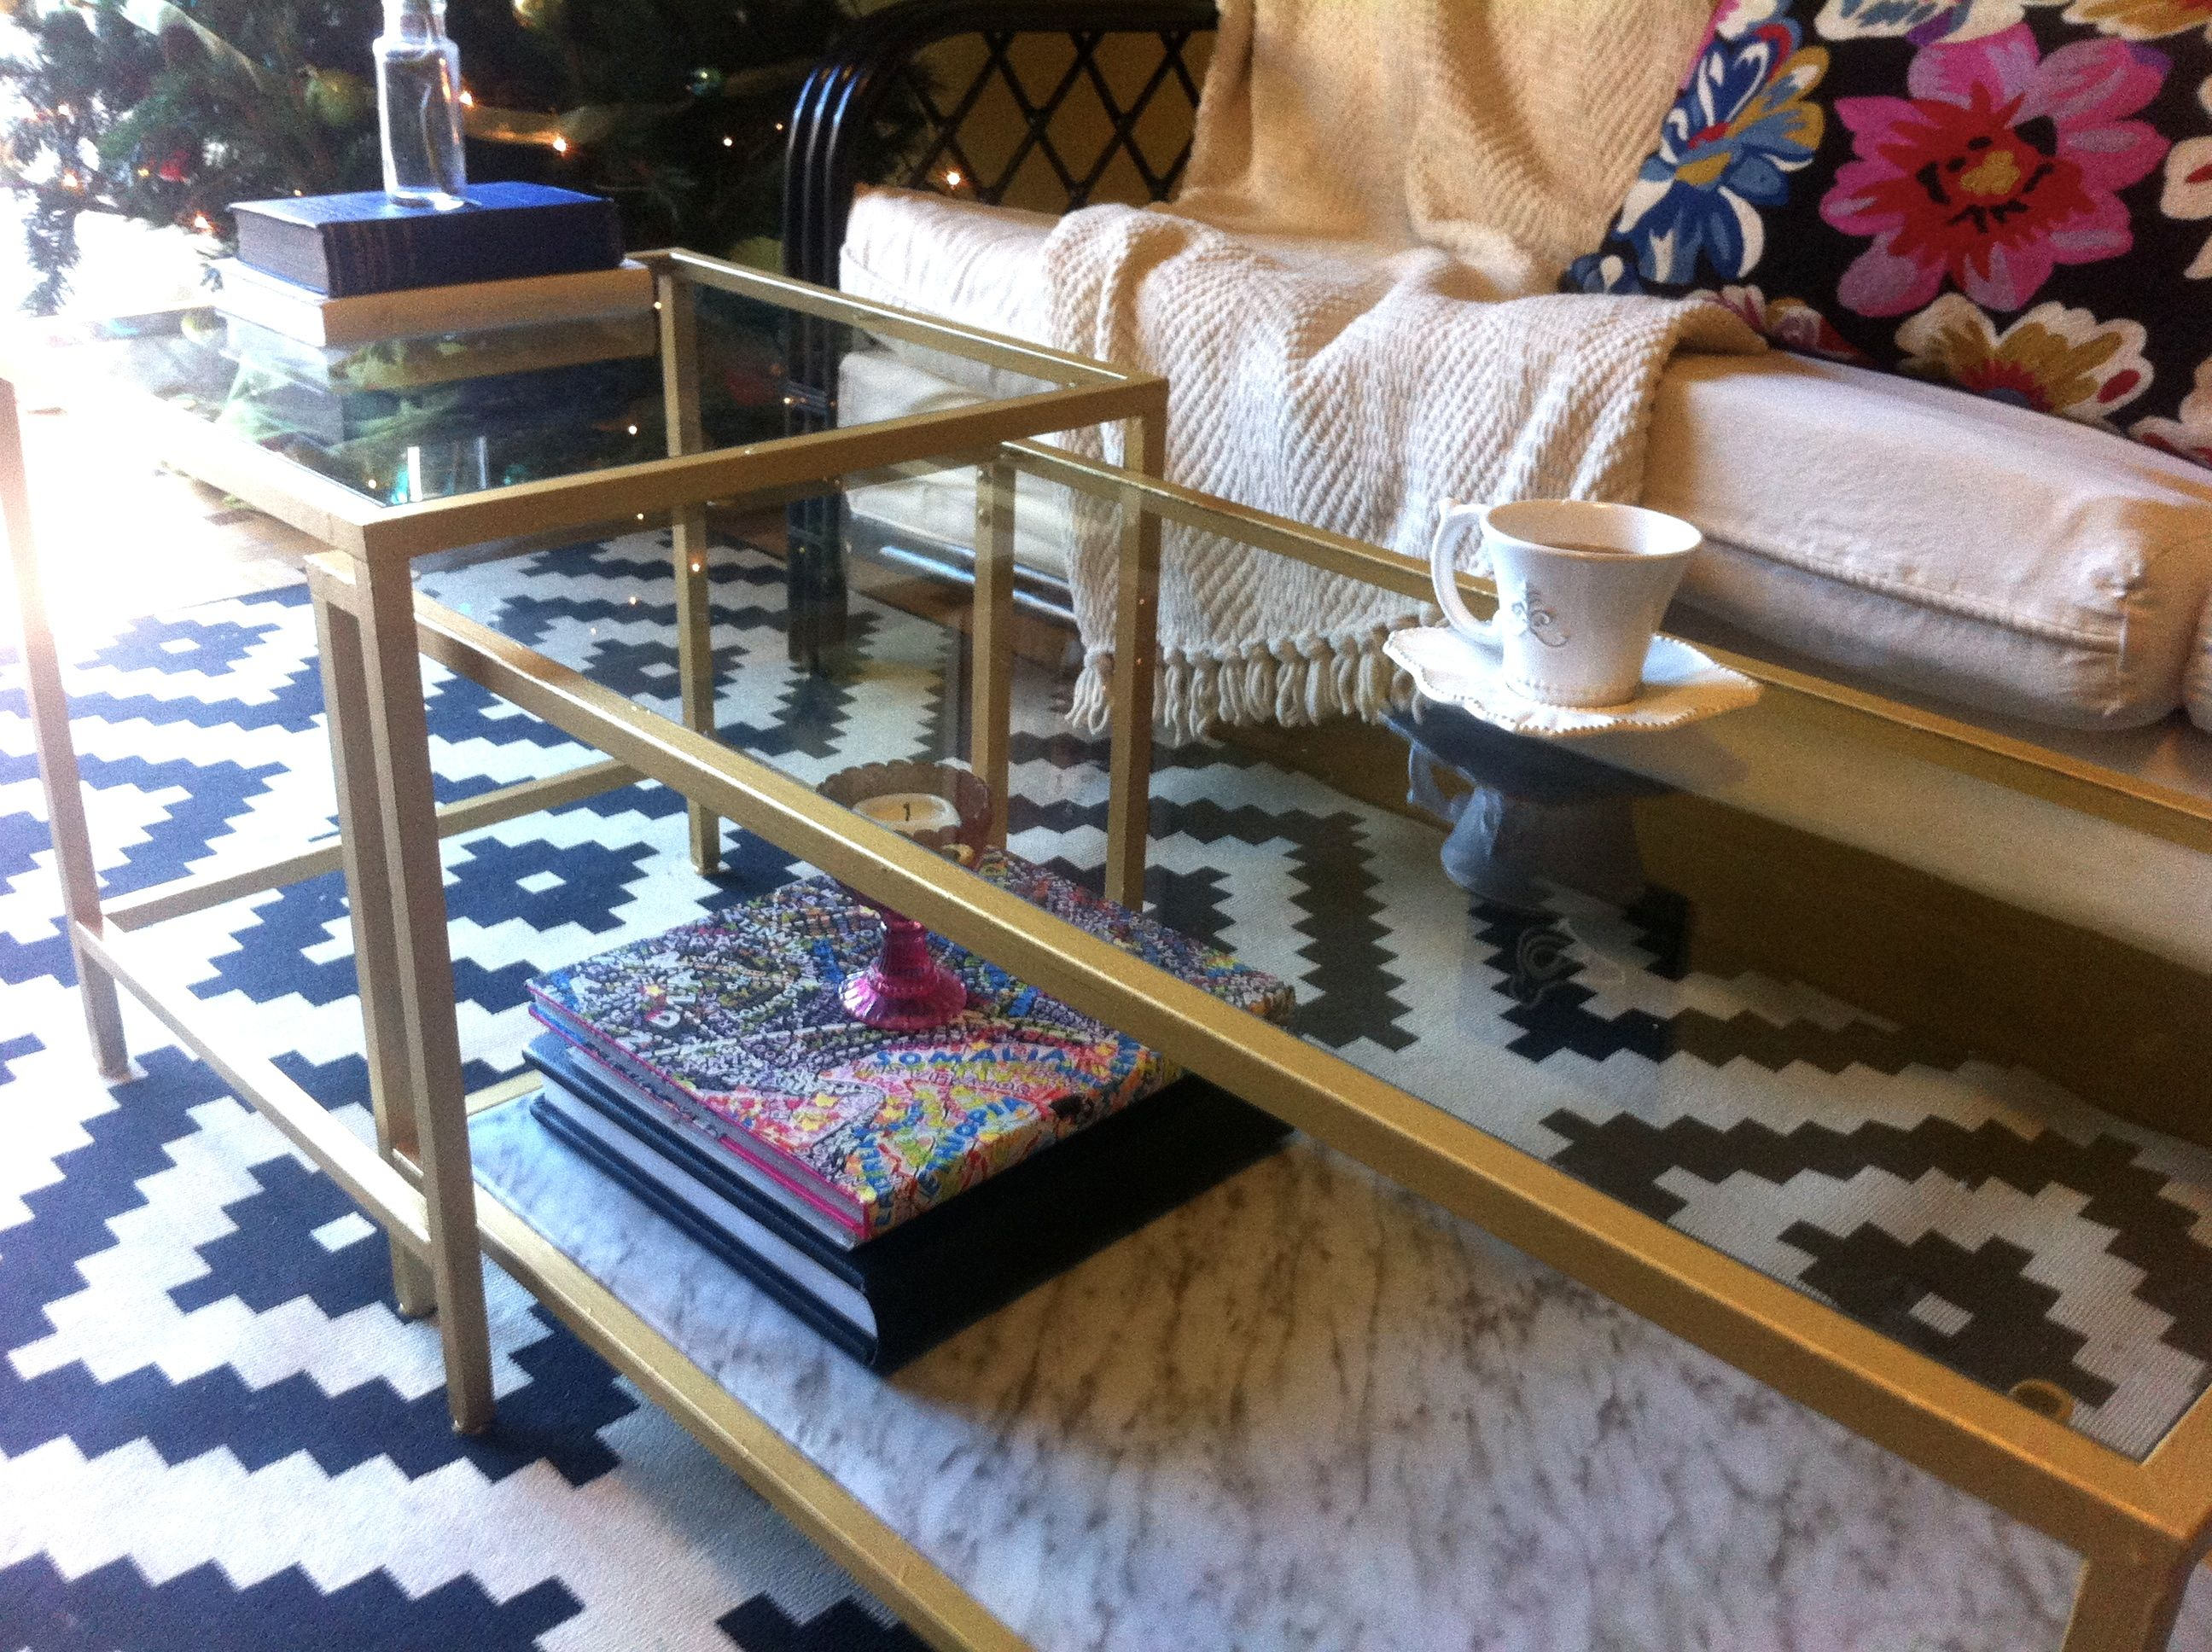 A Cheap Ikea Coffee Table Turned Glam The Next Dinner Party